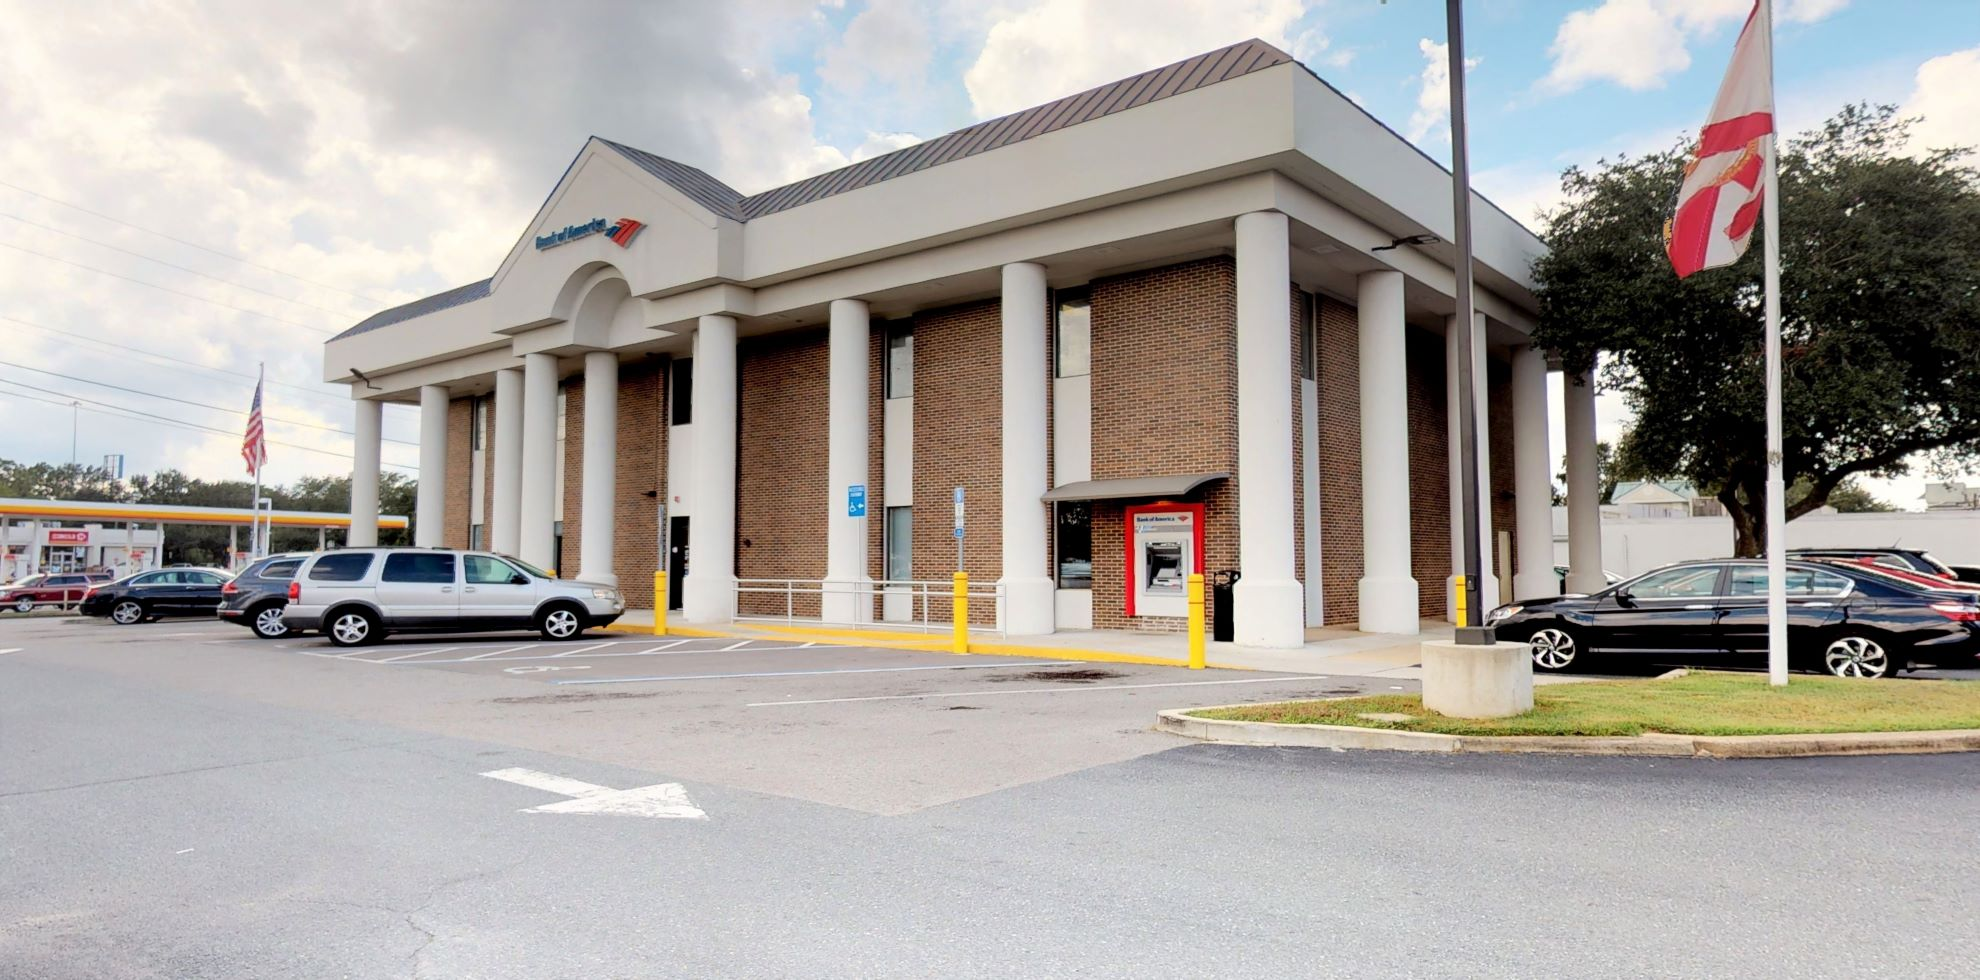 Bank of America financial center with drive-thru ATM and teller   3430 Thomasville Rd, Tallahassee, FL 32309